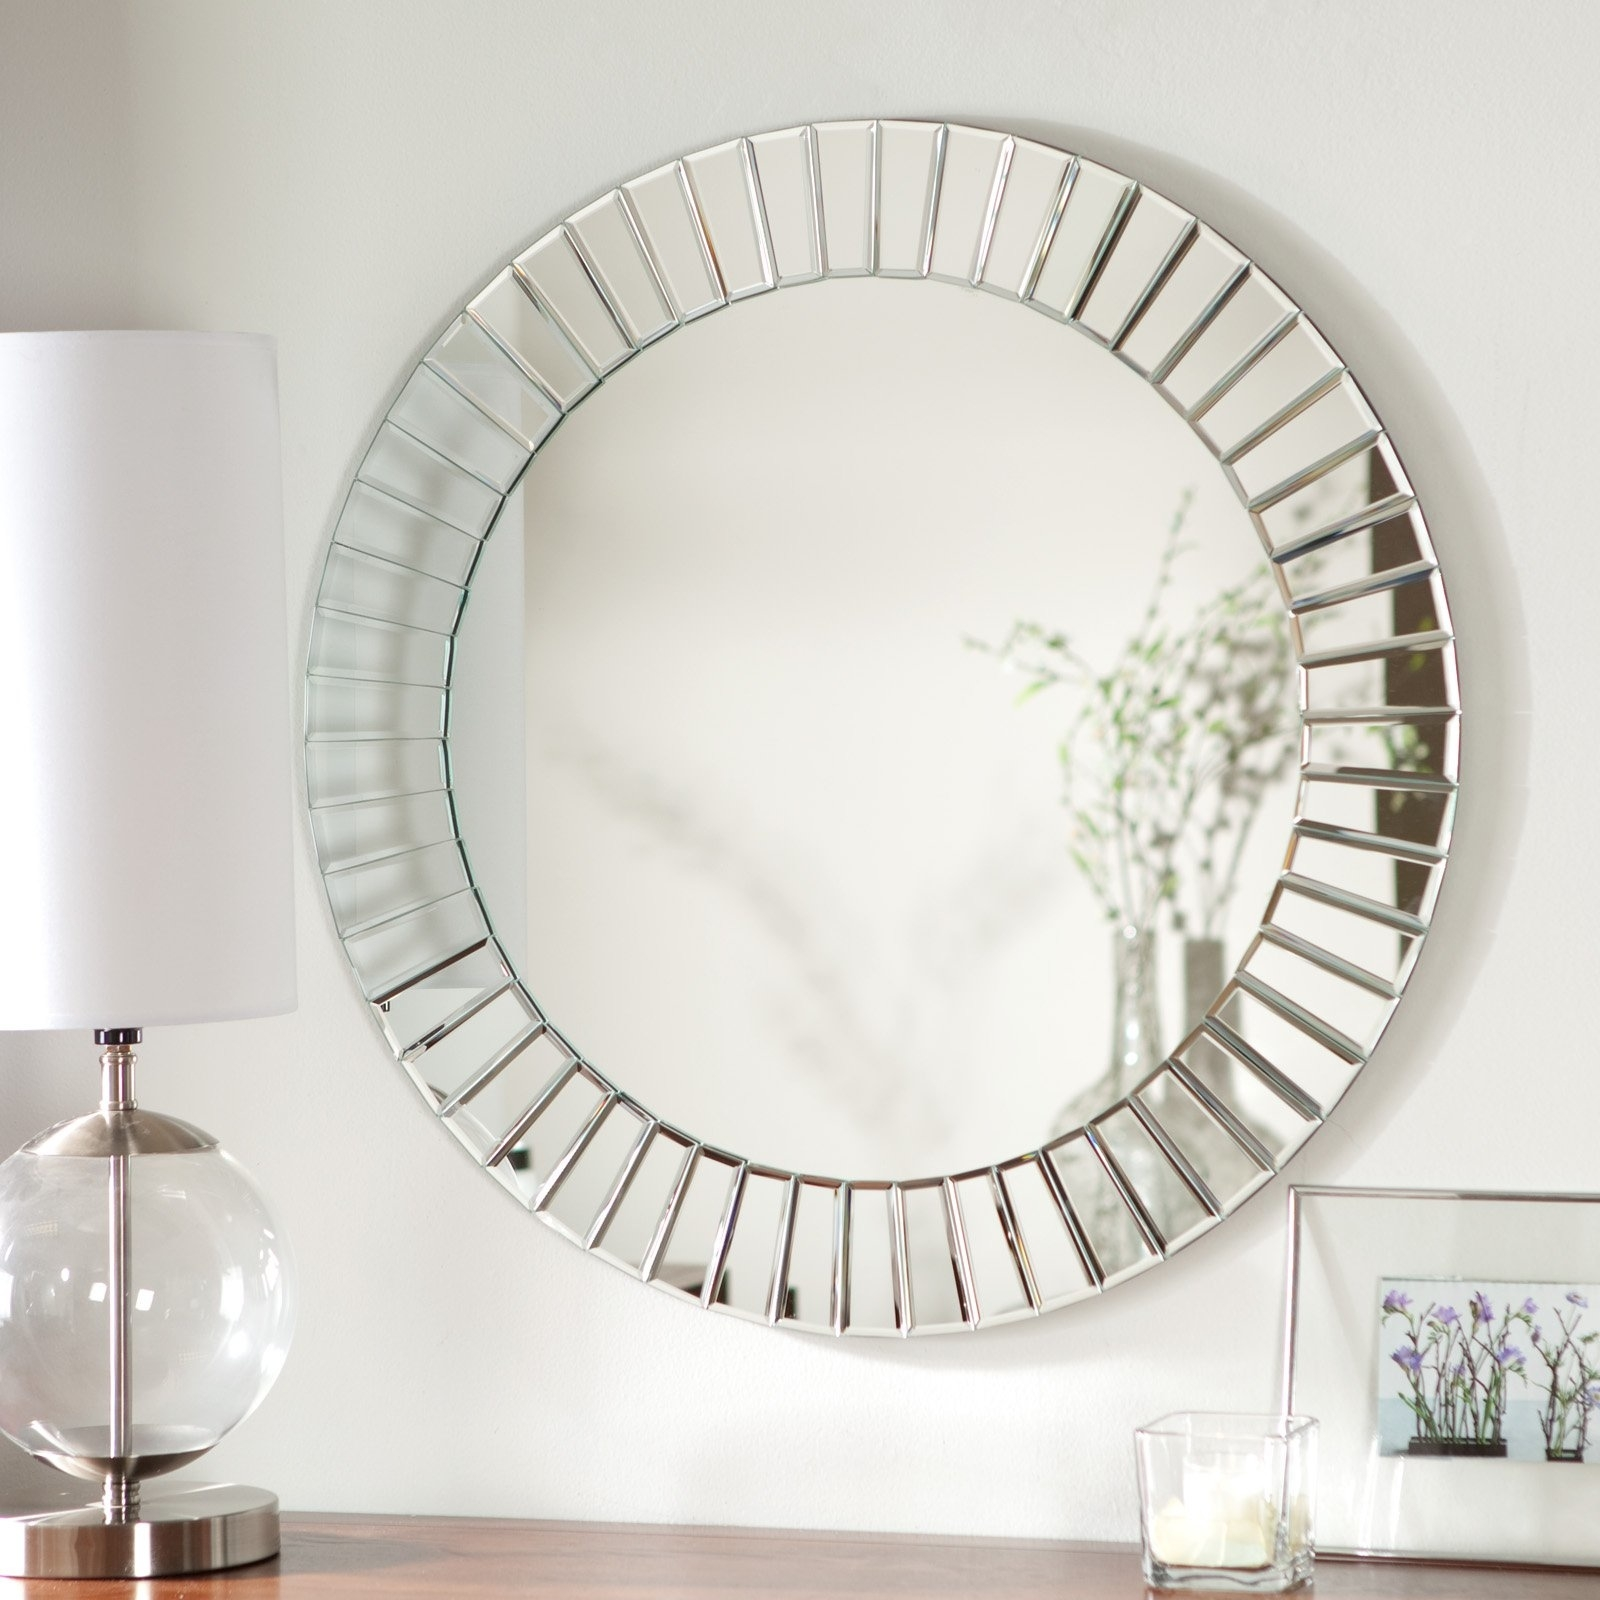 Small Decorative Mirrors For Bathrooms Creative Bathroom Decoration With Small Decorative Mirror (Image 9 of 15)